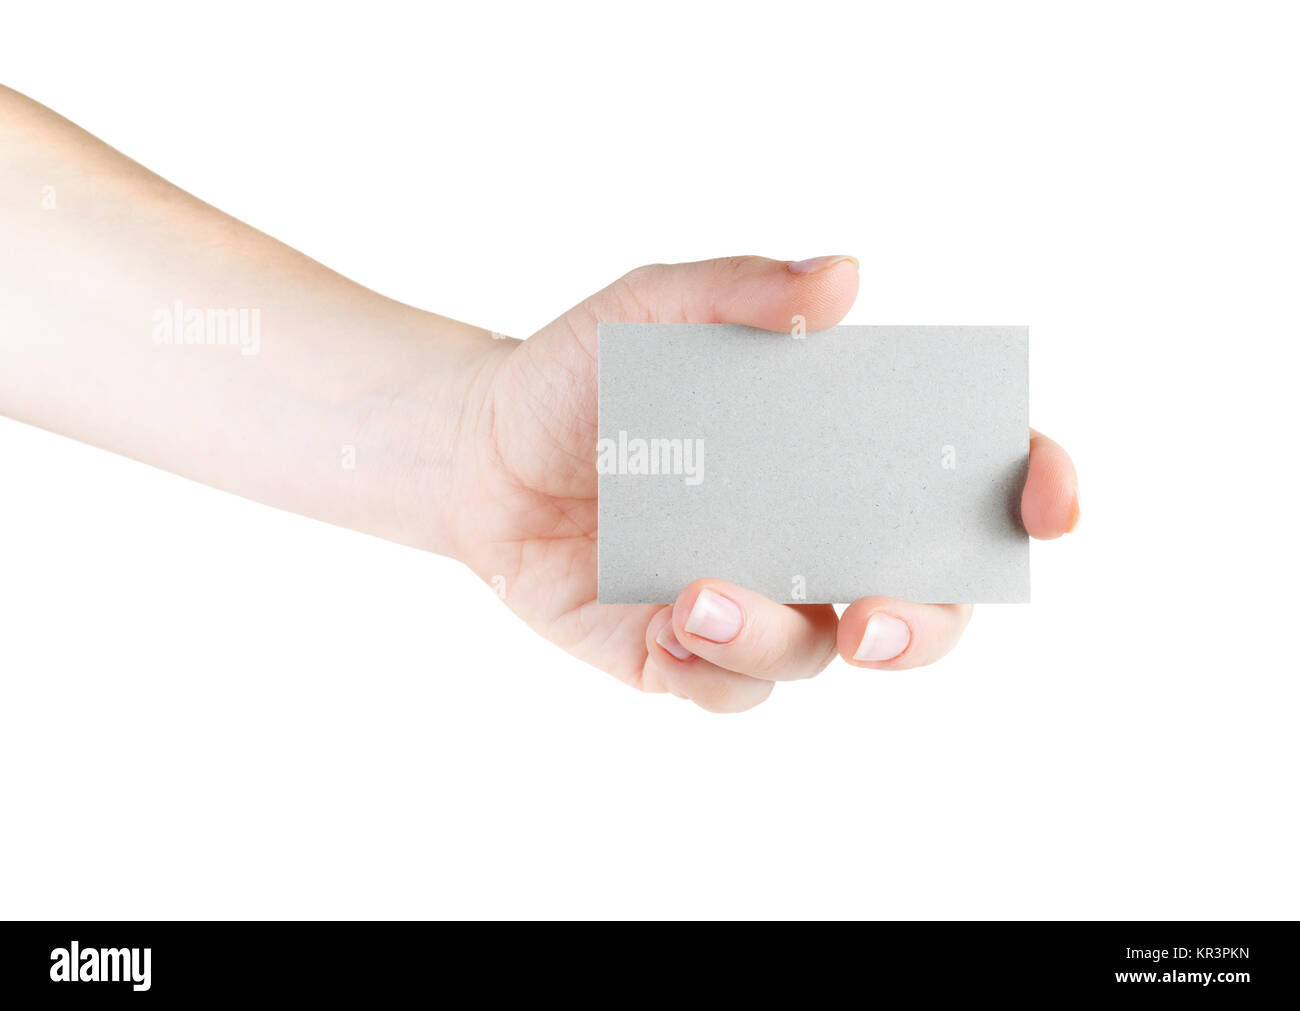 Business card in hand - Stock Image